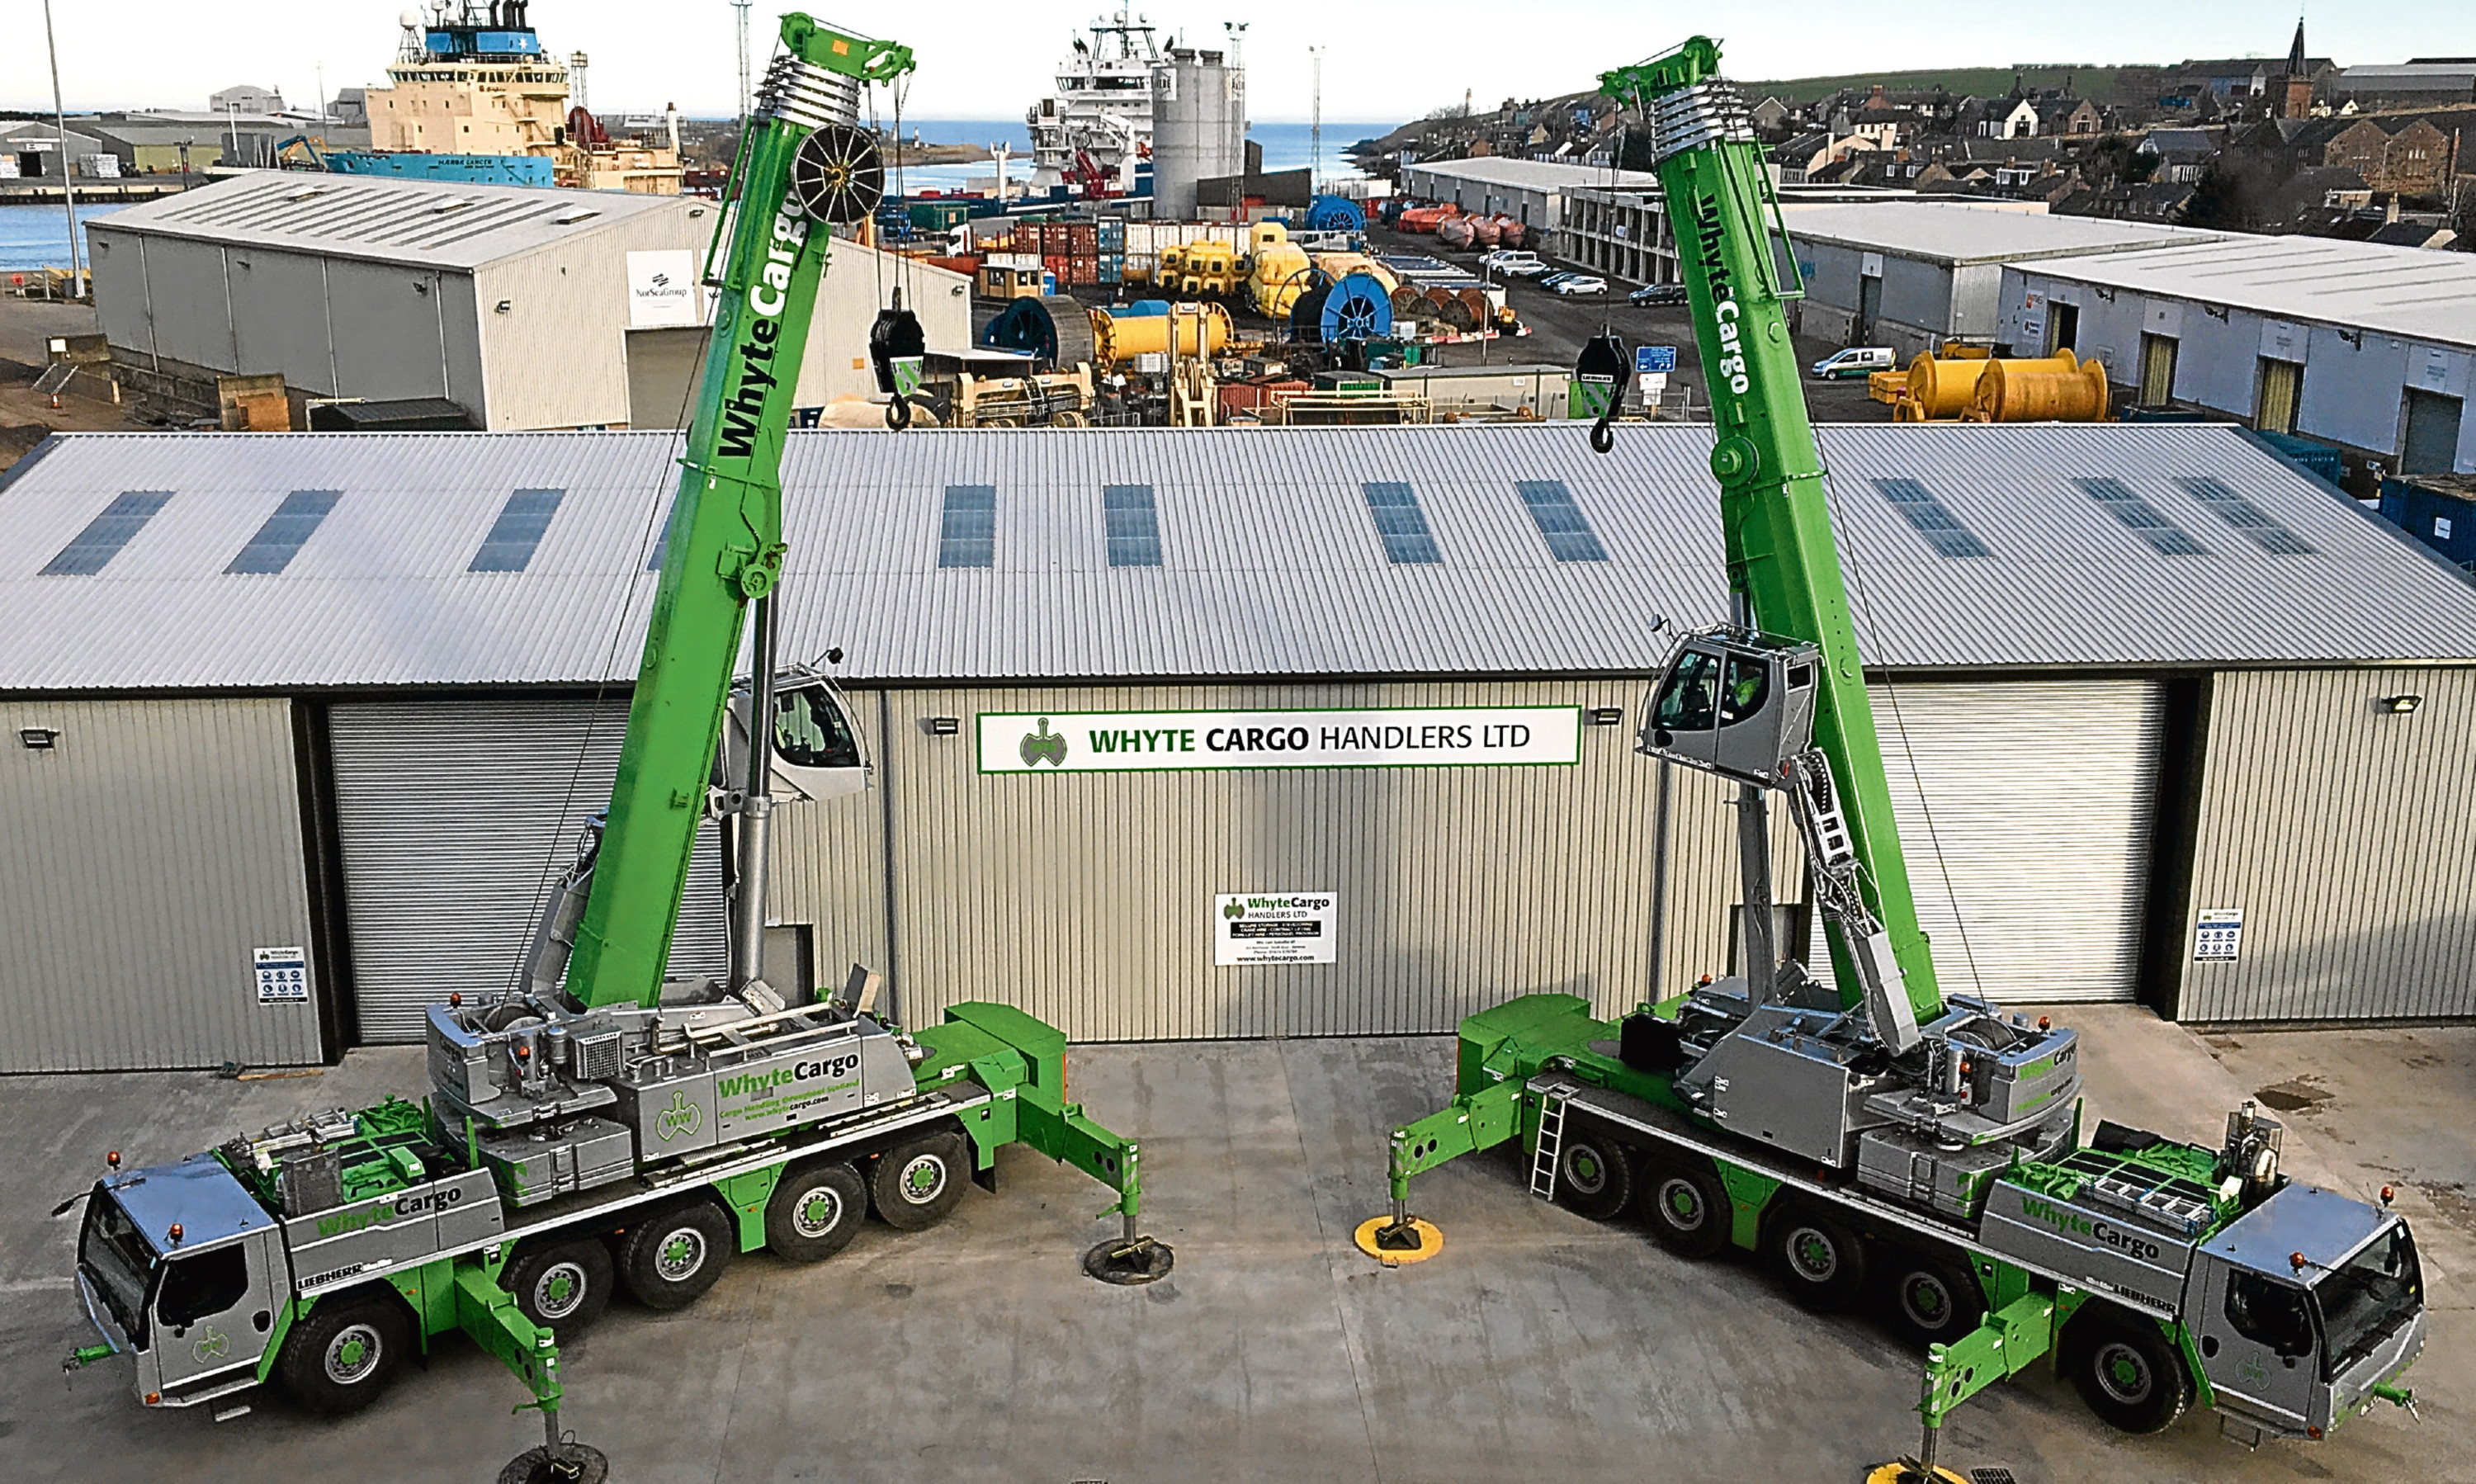 Whyte Cargo Handlers new warehouse at Montrose Port with their new Liebherr dockside cranes